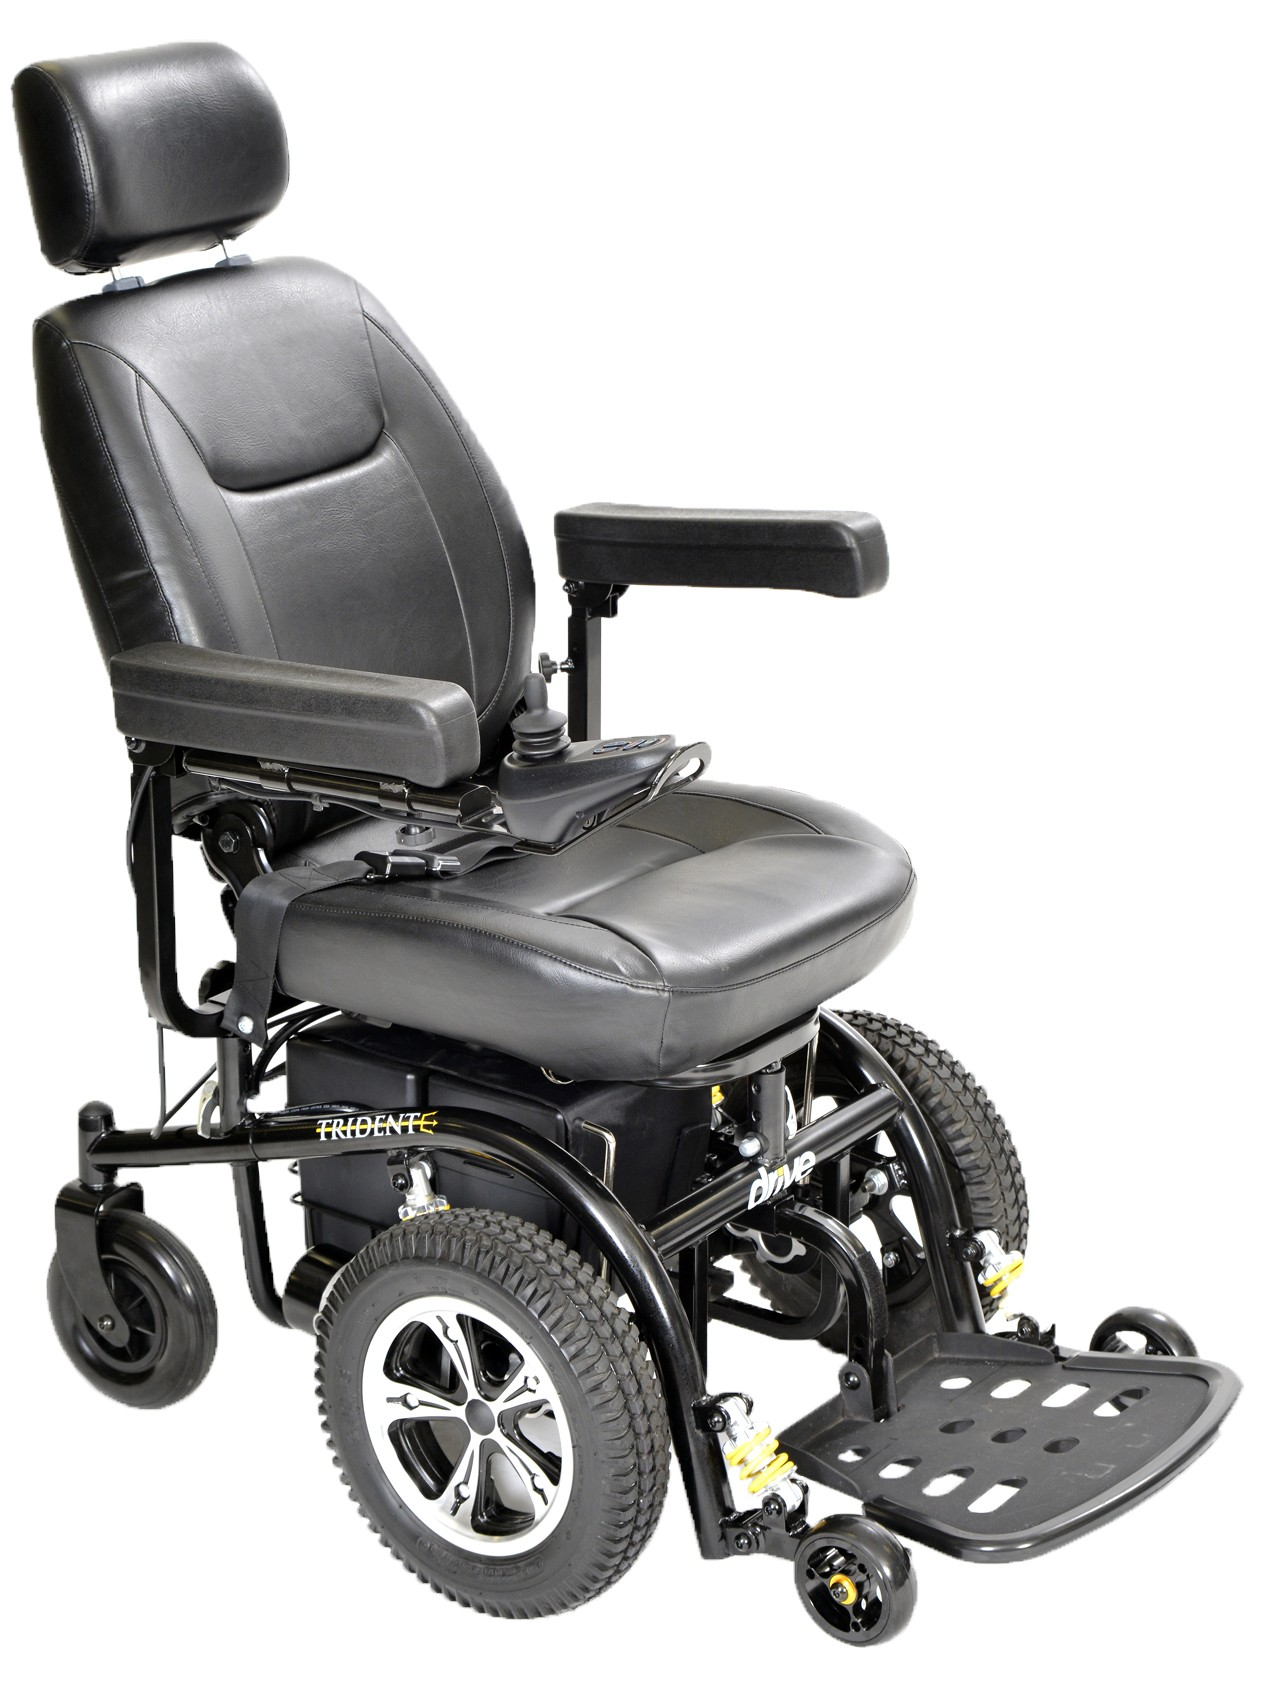 Used Power Chair Mobility Scooter Repair Company In Central Florida